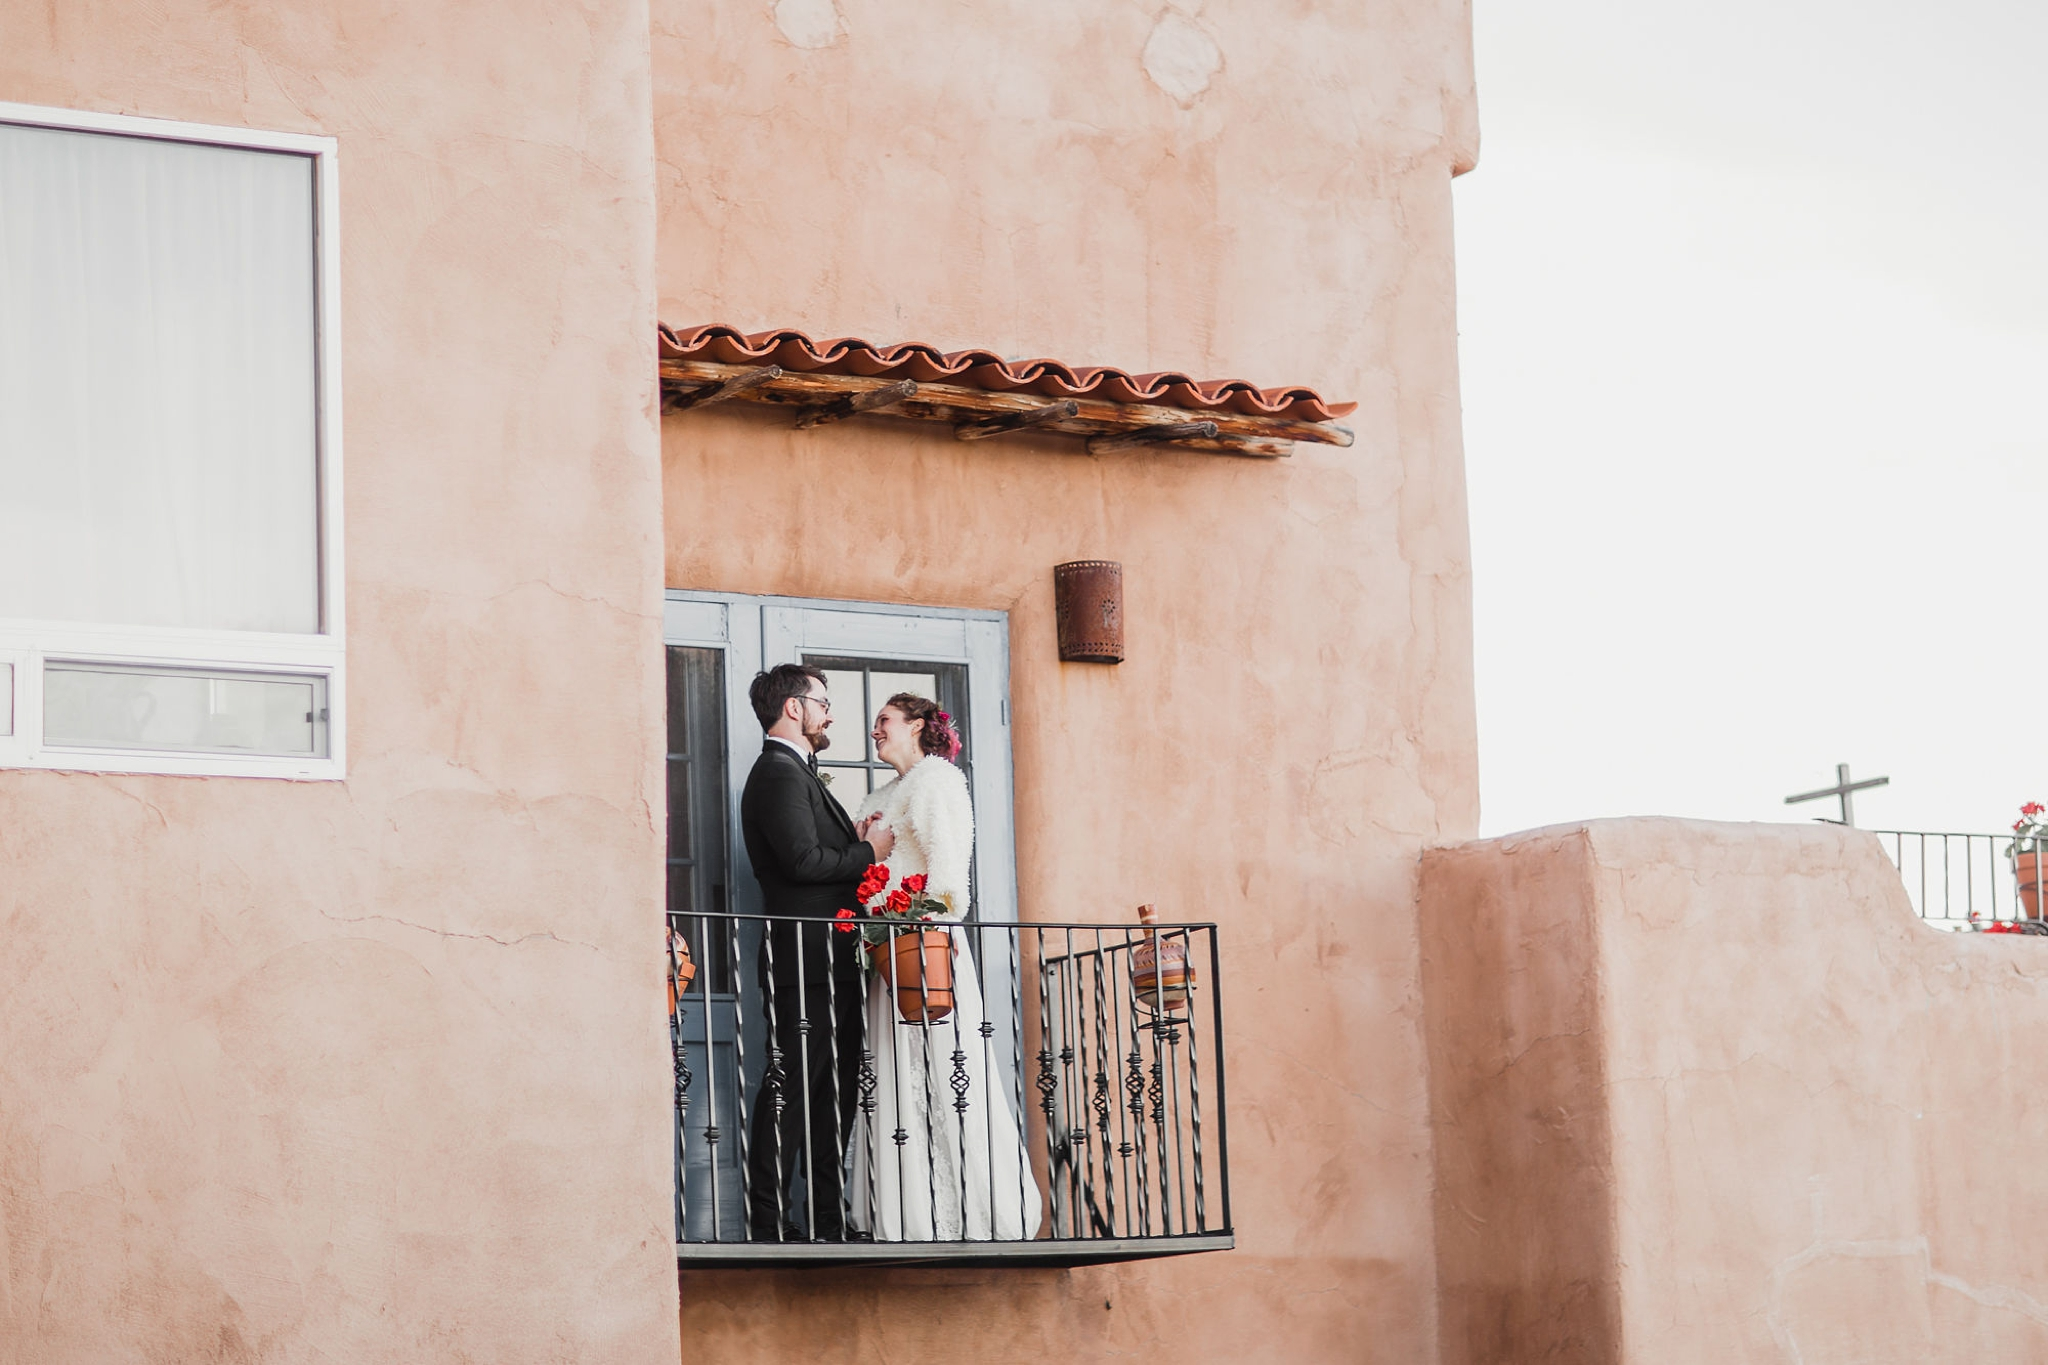 Alicia+lucia+photography+-+albuquerque+wedding+photographer+-+santa+fe+wedding+photography+-+new+mexico+wedding+photographer+-+new+mexico+wedding+-+engagement+-+santa+fe+wedding+-+hacienda+dona+andrea+-+hacienda+dona+andrea+wedding_0086.jpg